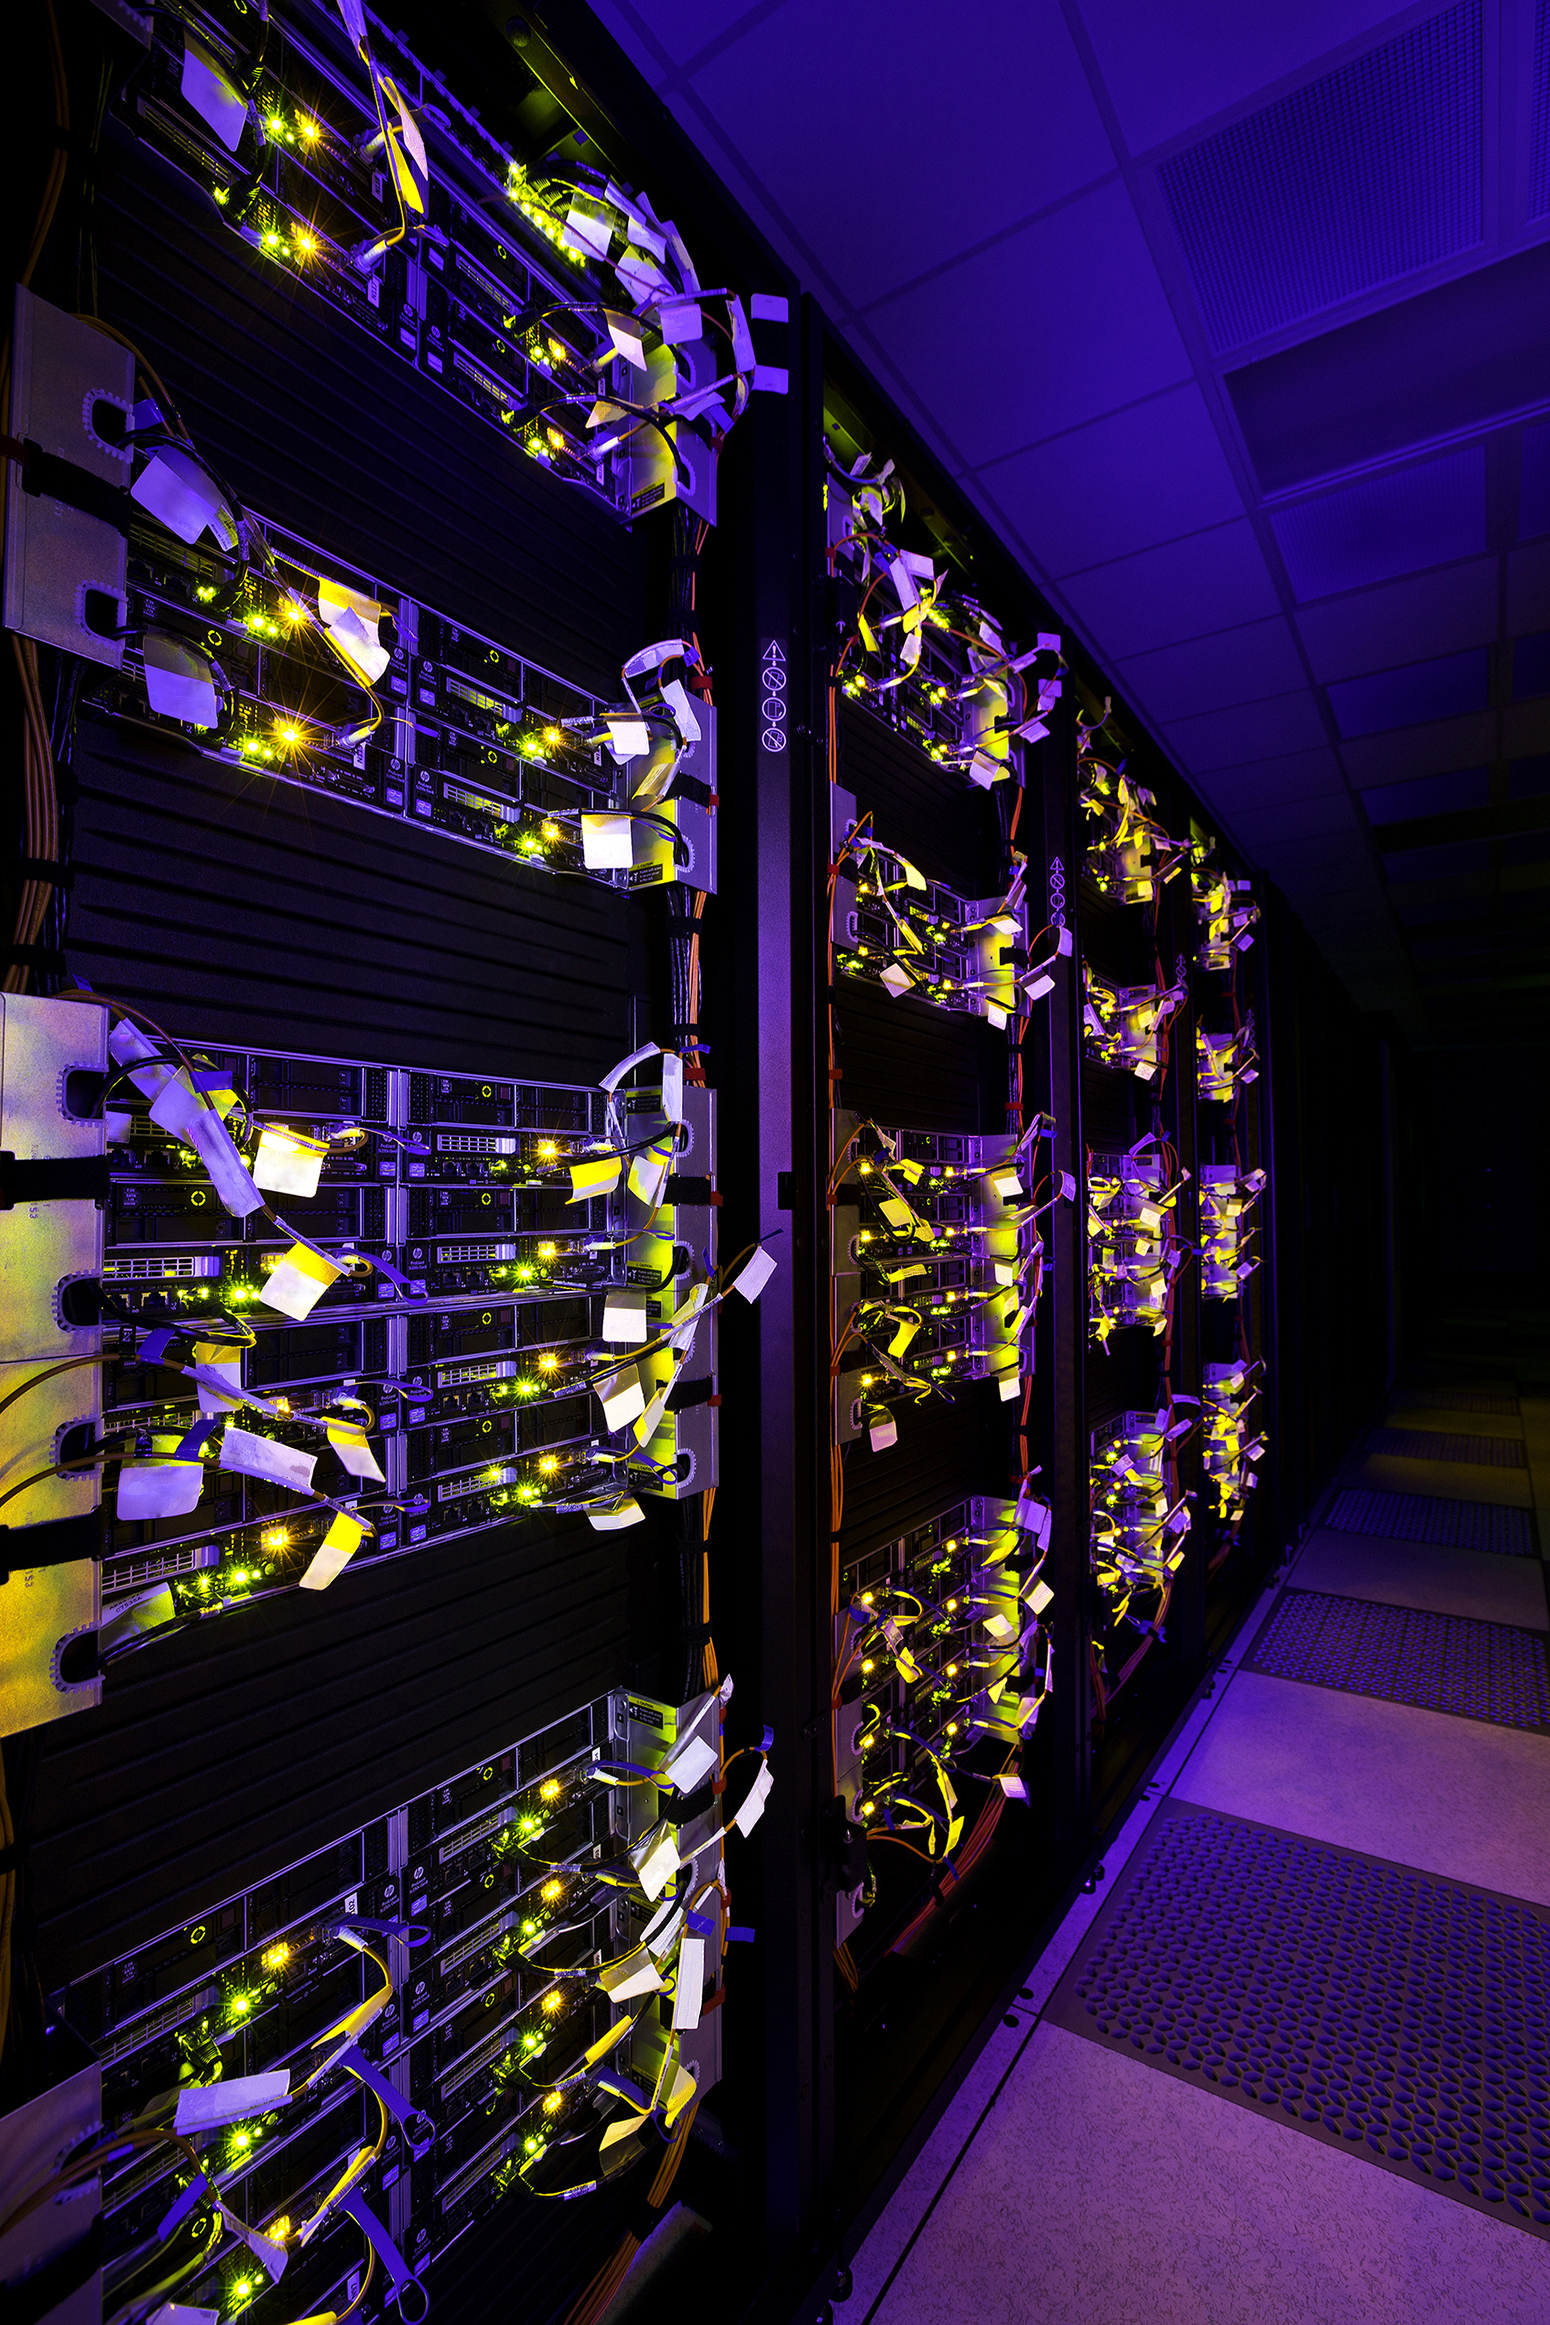 USC's new supercomputer is ranked fifth in the United States among academic supercomputers. (Photo/John Livzey)